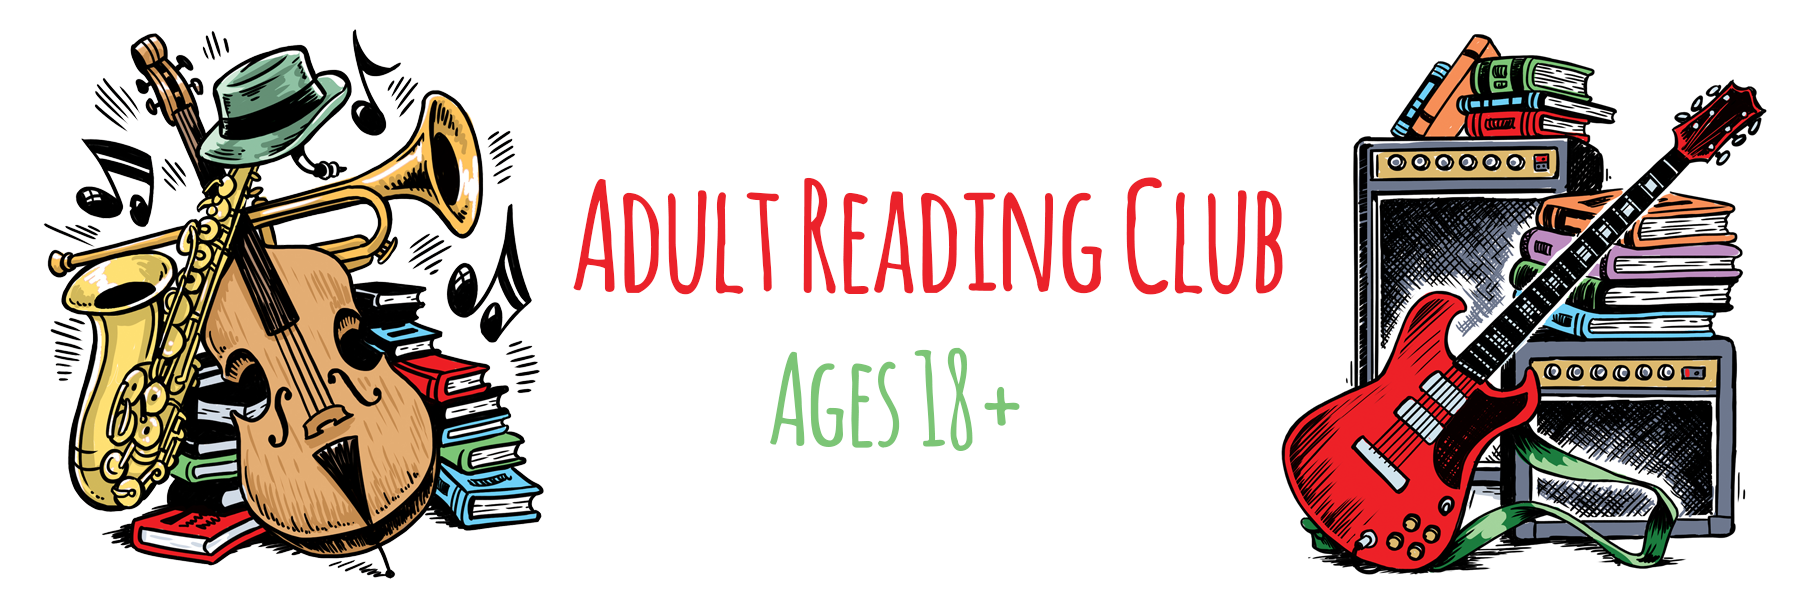 Adult Reading Club